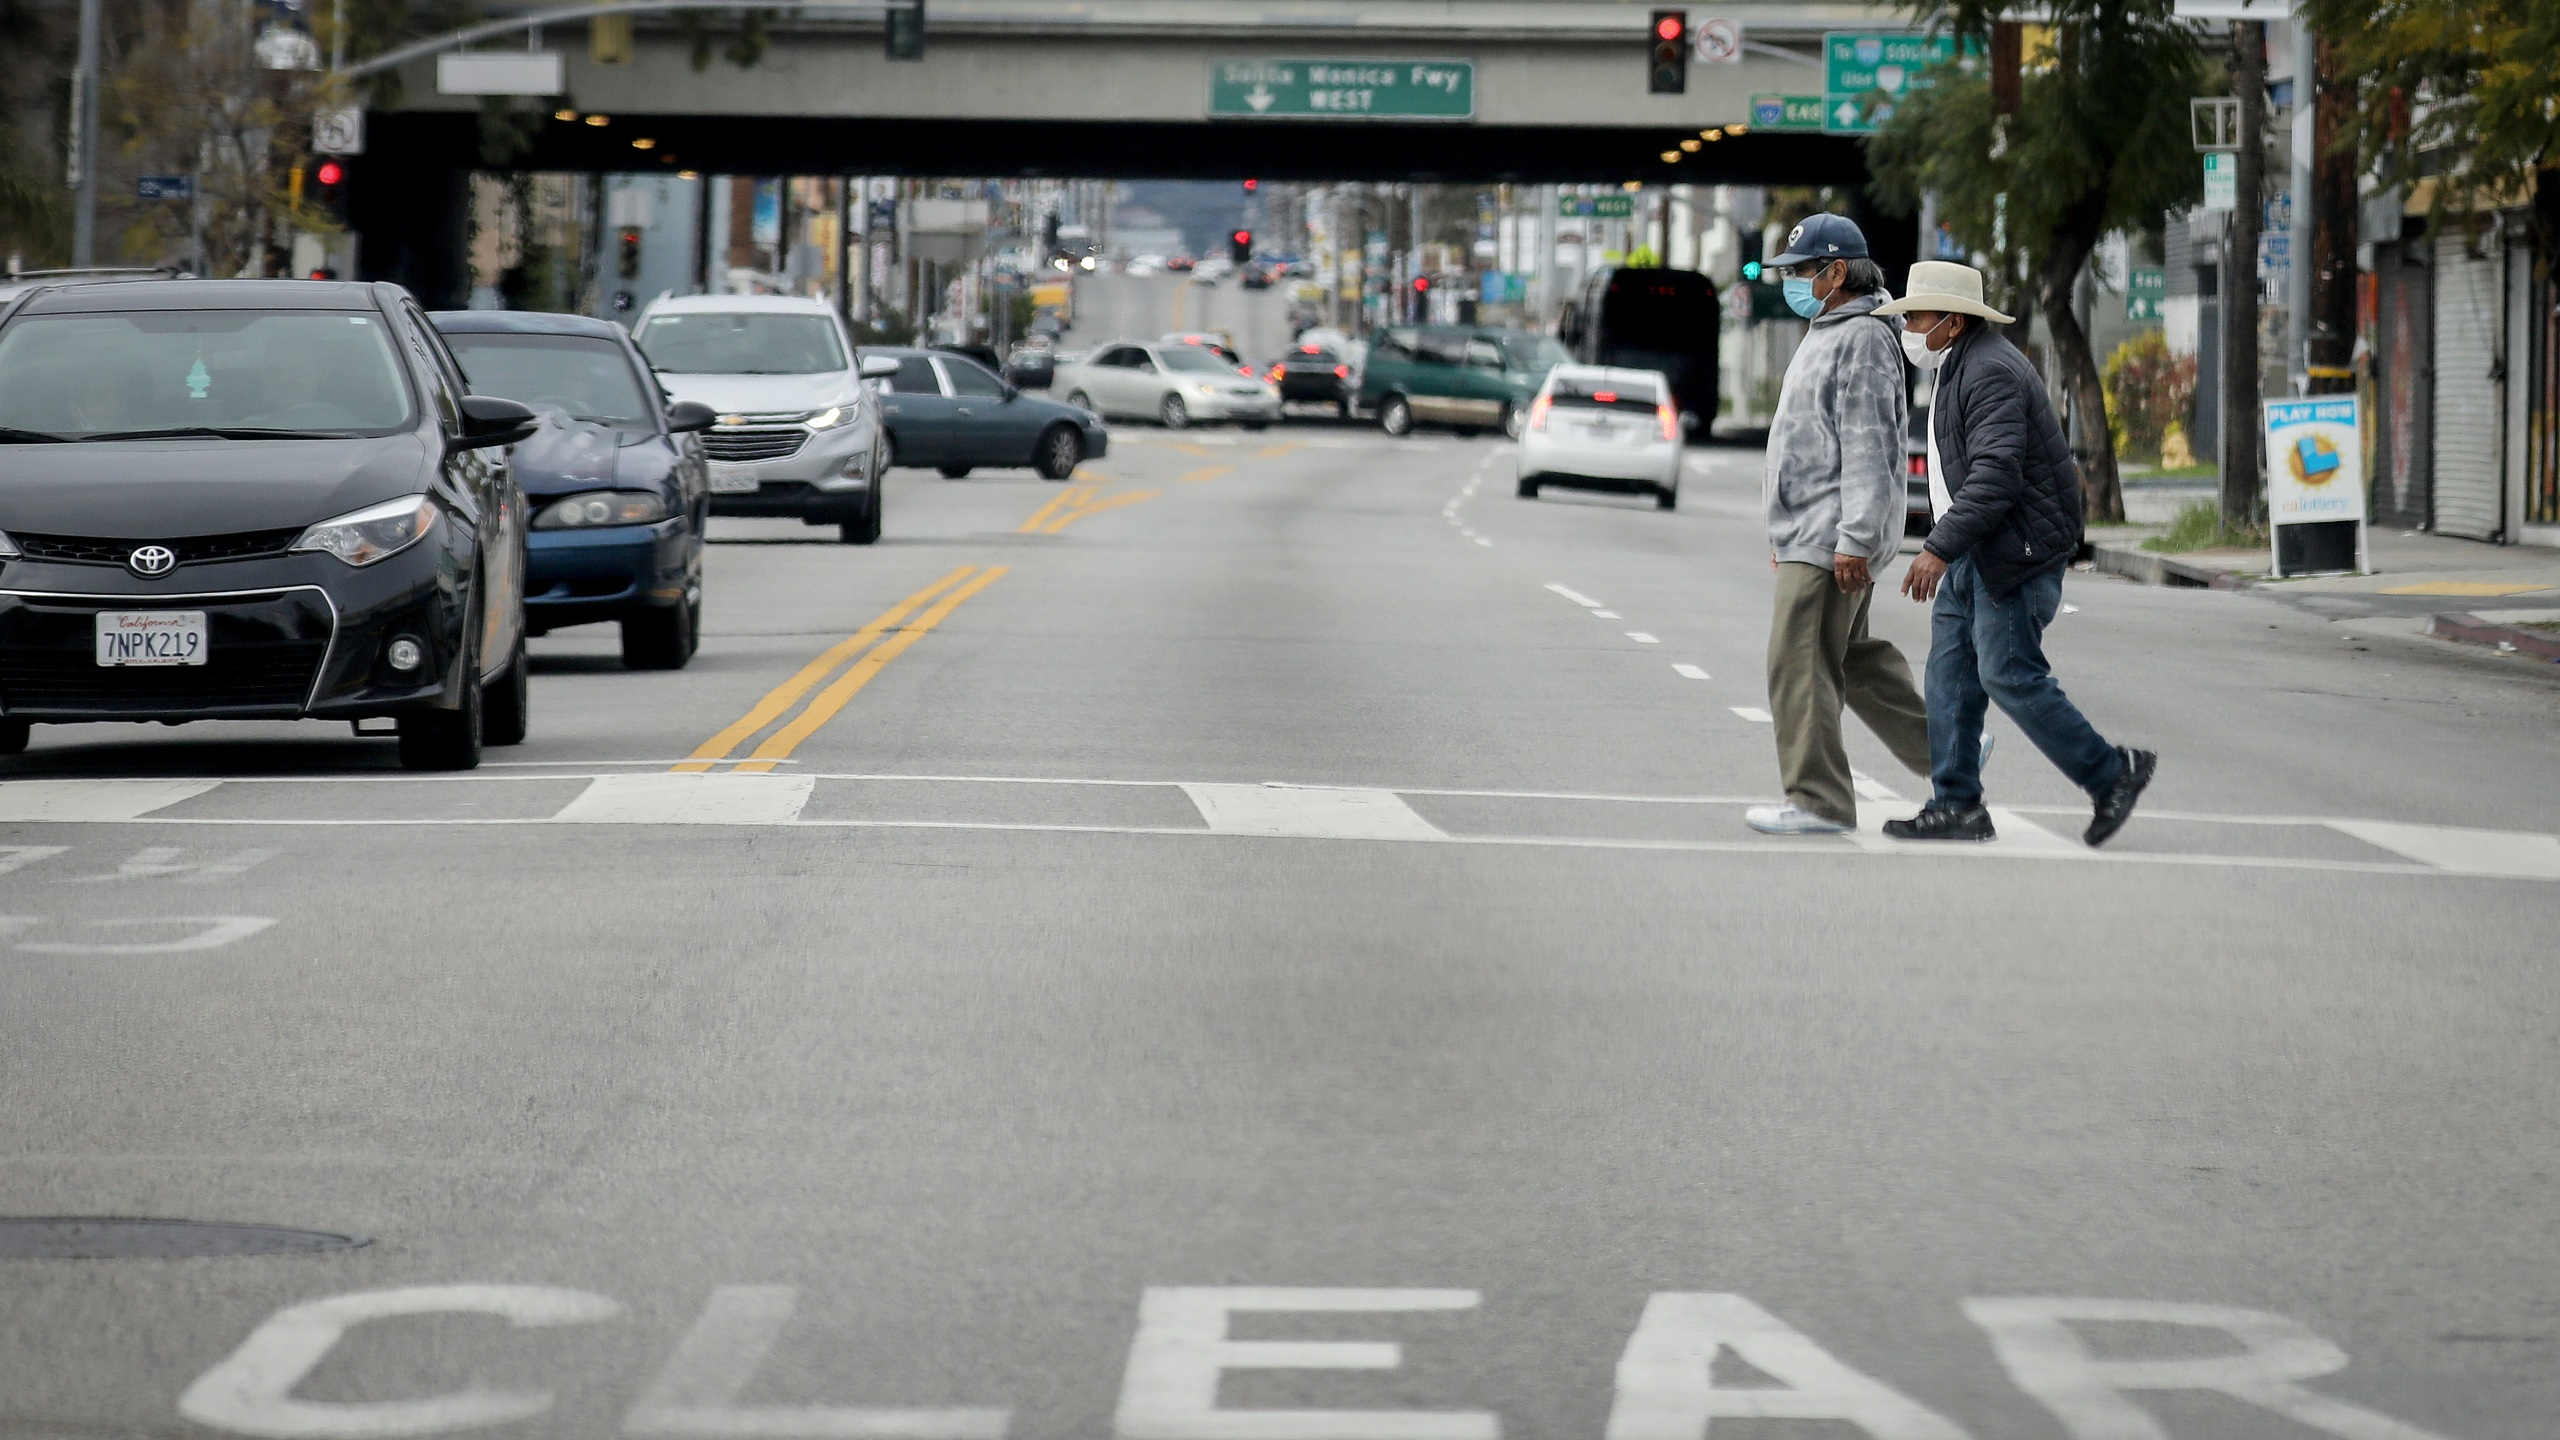 Men cross a street wearing face masks amid the coronavirus pandemic in Los Angeles on April 6, 2020. (Mario Tama/Getty Images)